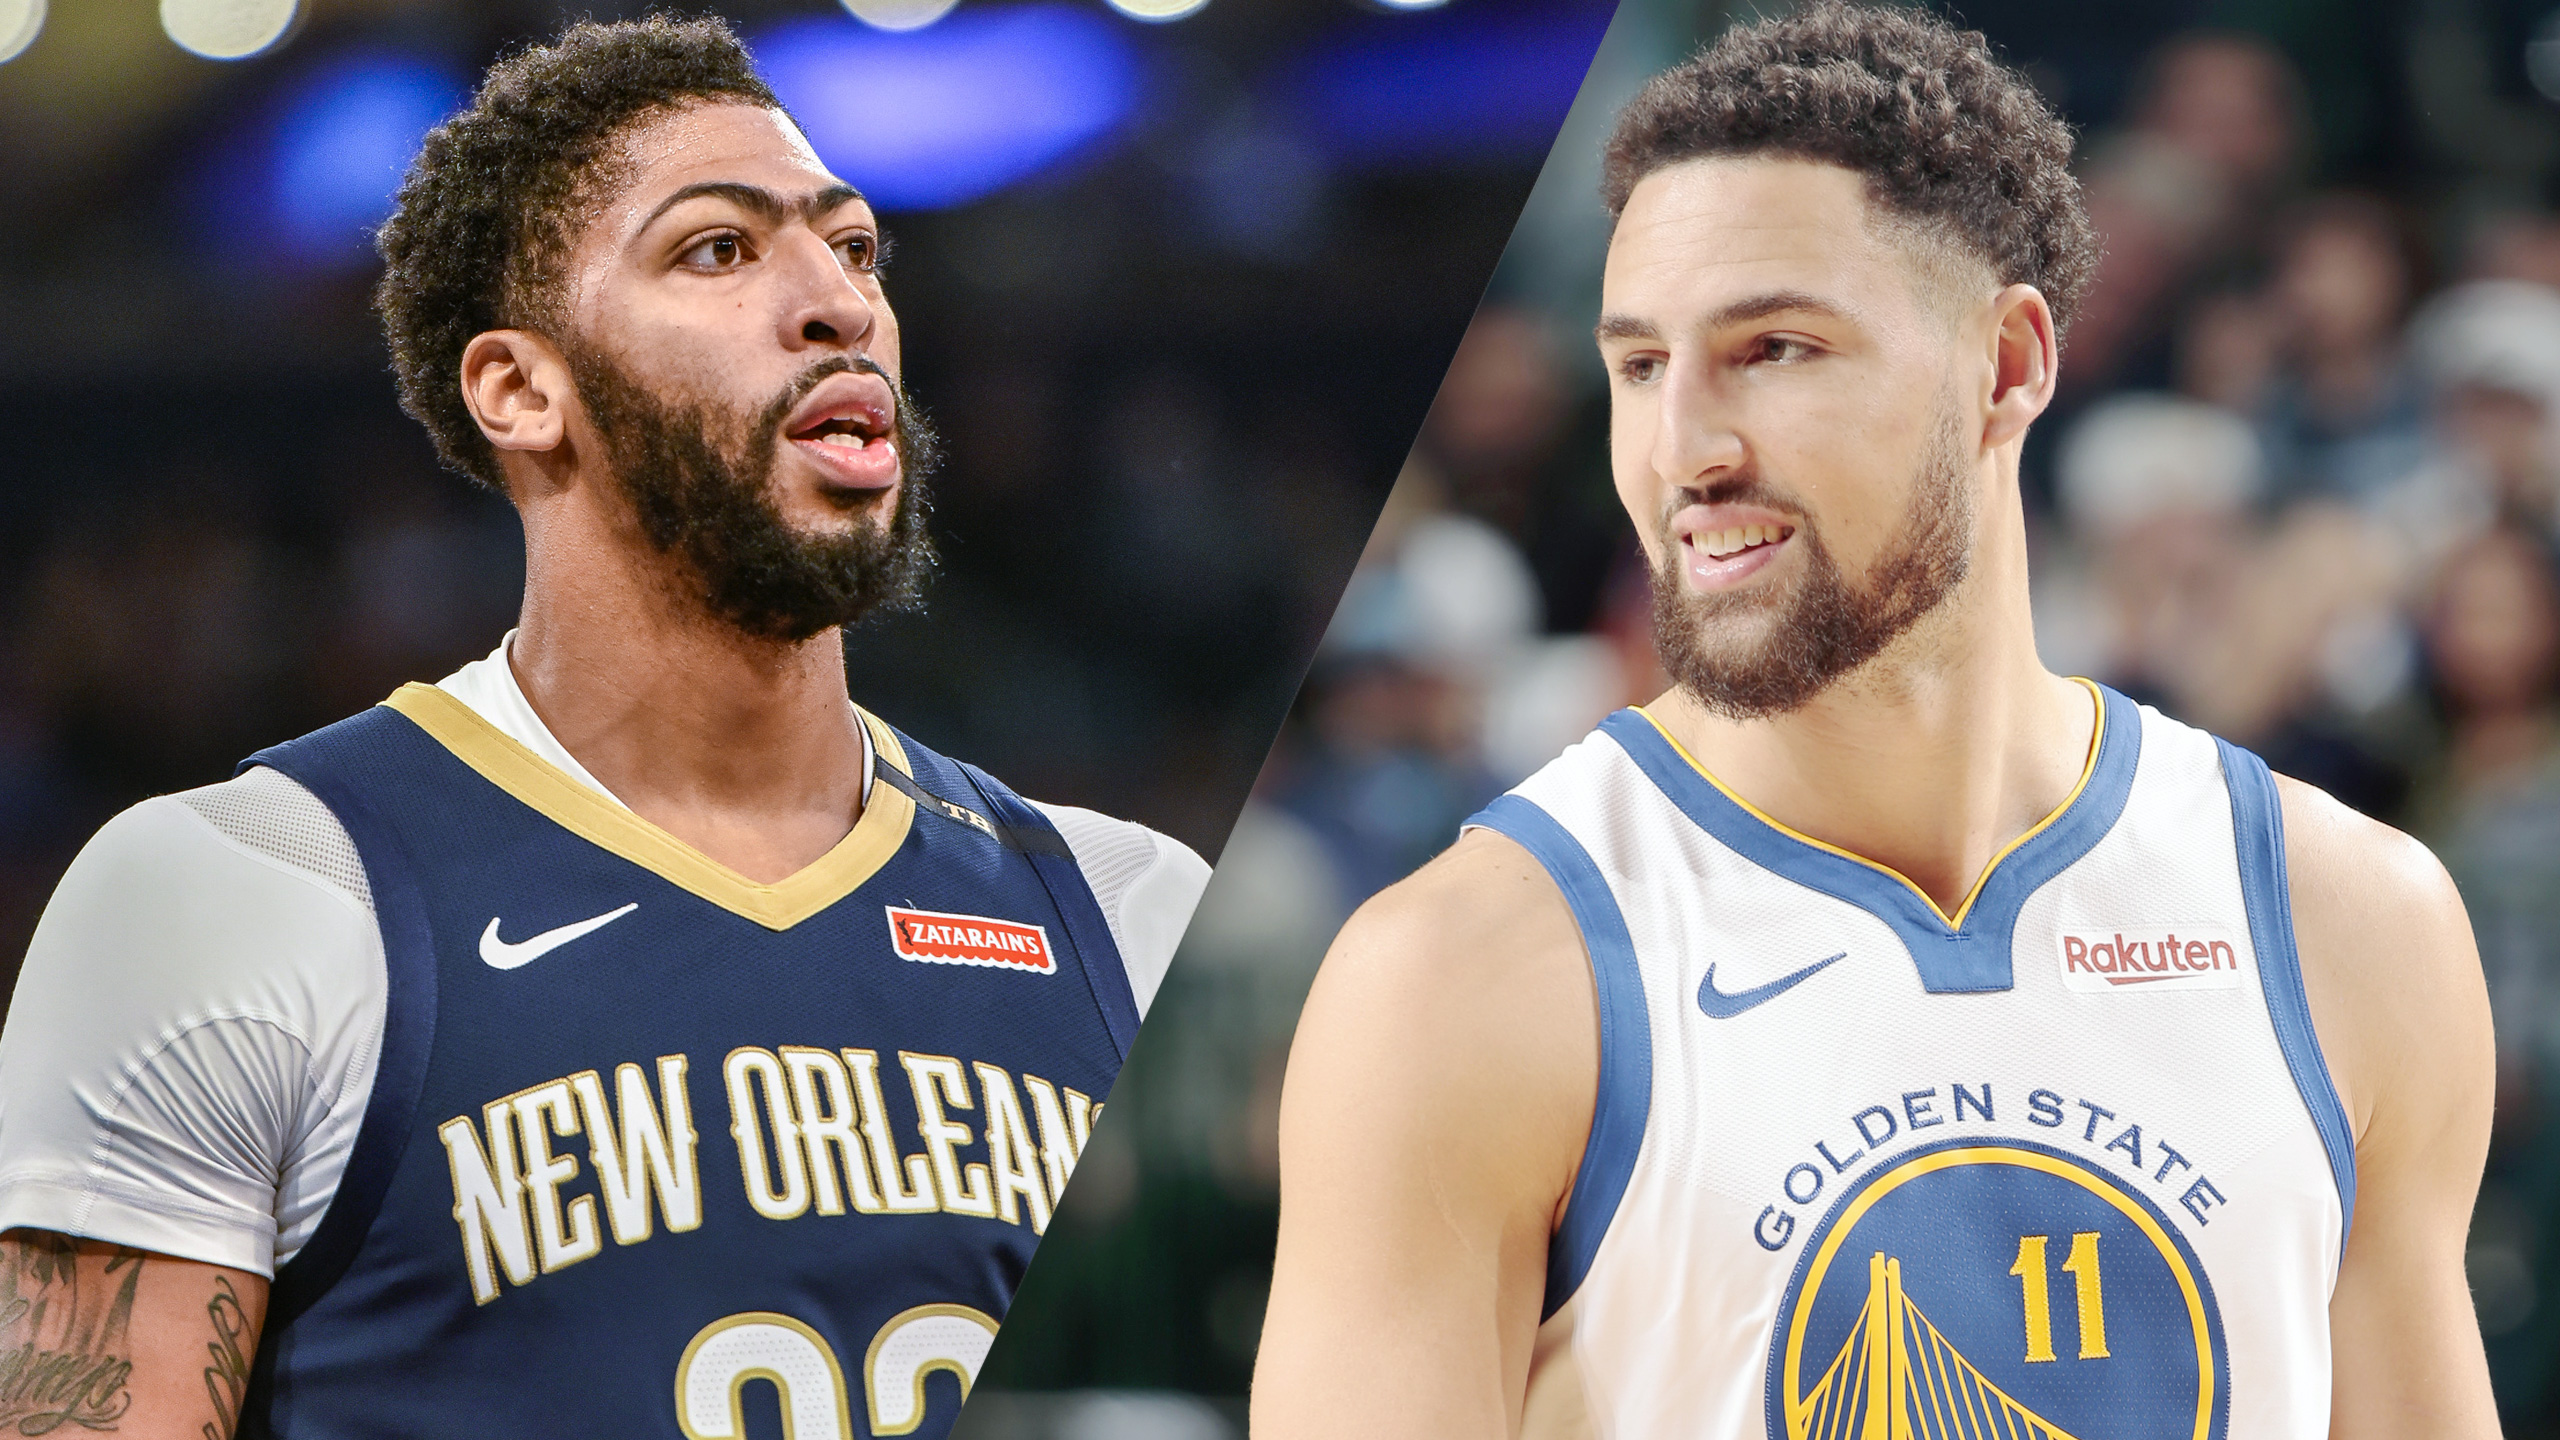 New Orleans Pelicans vs. Golden State Warriors (re-air)